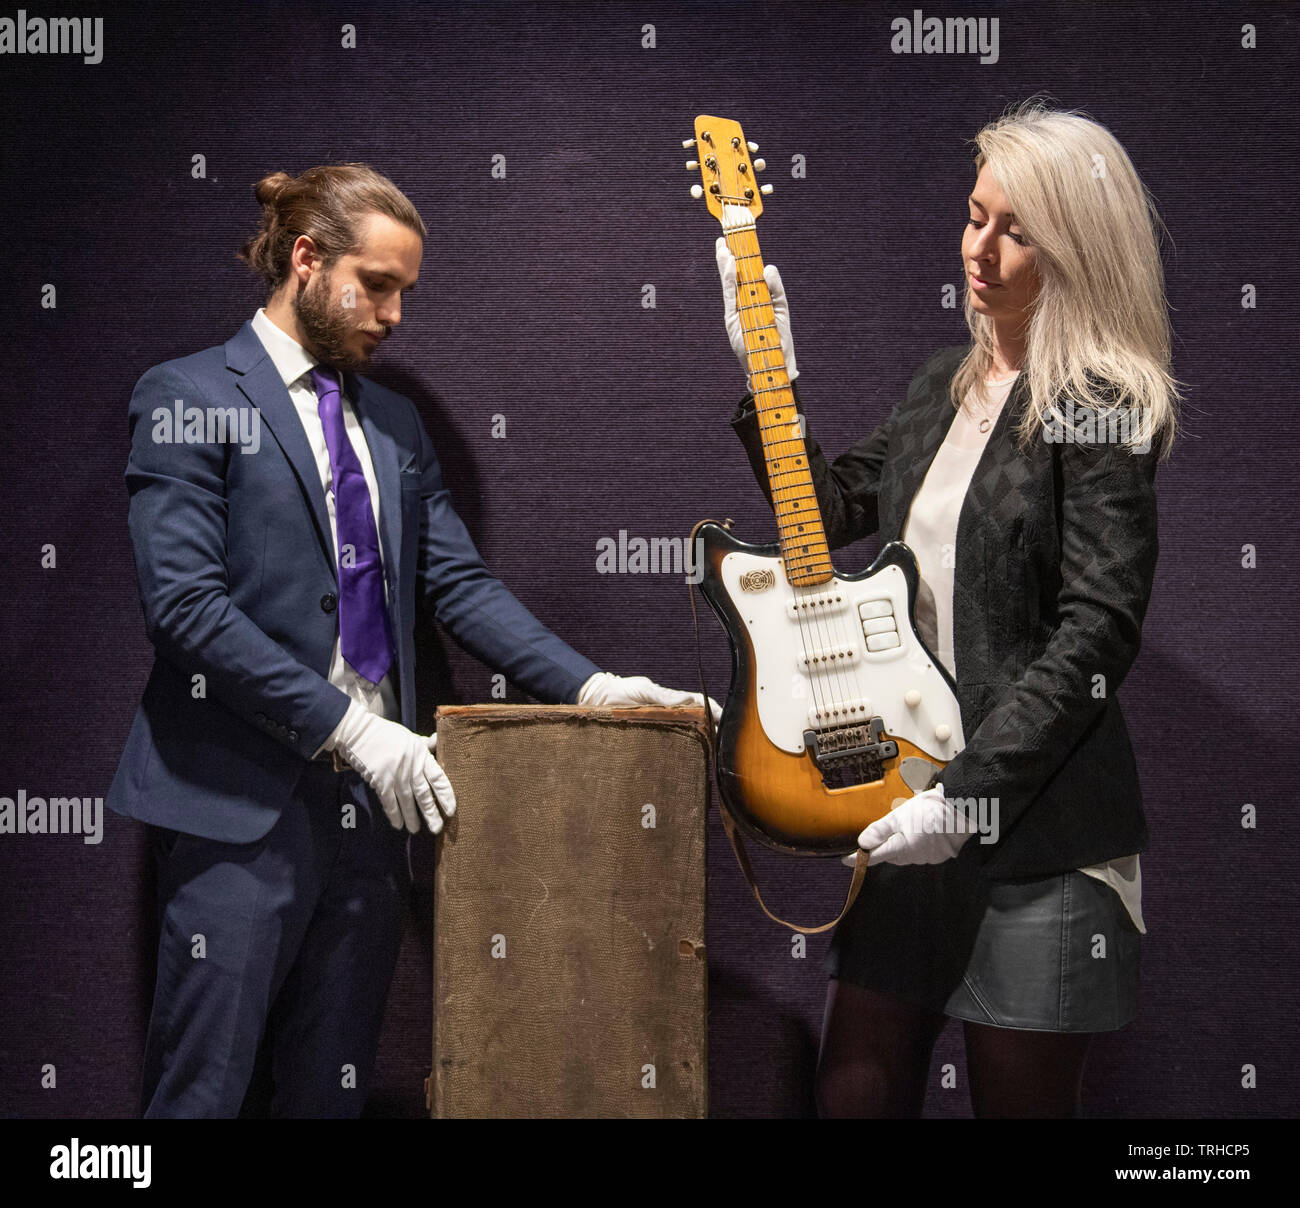 Bonhams, London, UK. 6th June 2019. George Harrison's Futurama electric guitar, c 1958, on display at Bonhams Entertainment Memorabilia sale preview Knightsbridge for sale on 12th June. Estimate £200,000-300,000. This historically important guitar, which comes in its original case (pictured) embellished with Hamburg stickers, has never been seen on the market before; it has impeccable provenance and is extremely well-documented. Credit: Malcolm Park/Alamy Live News. - Stock Image